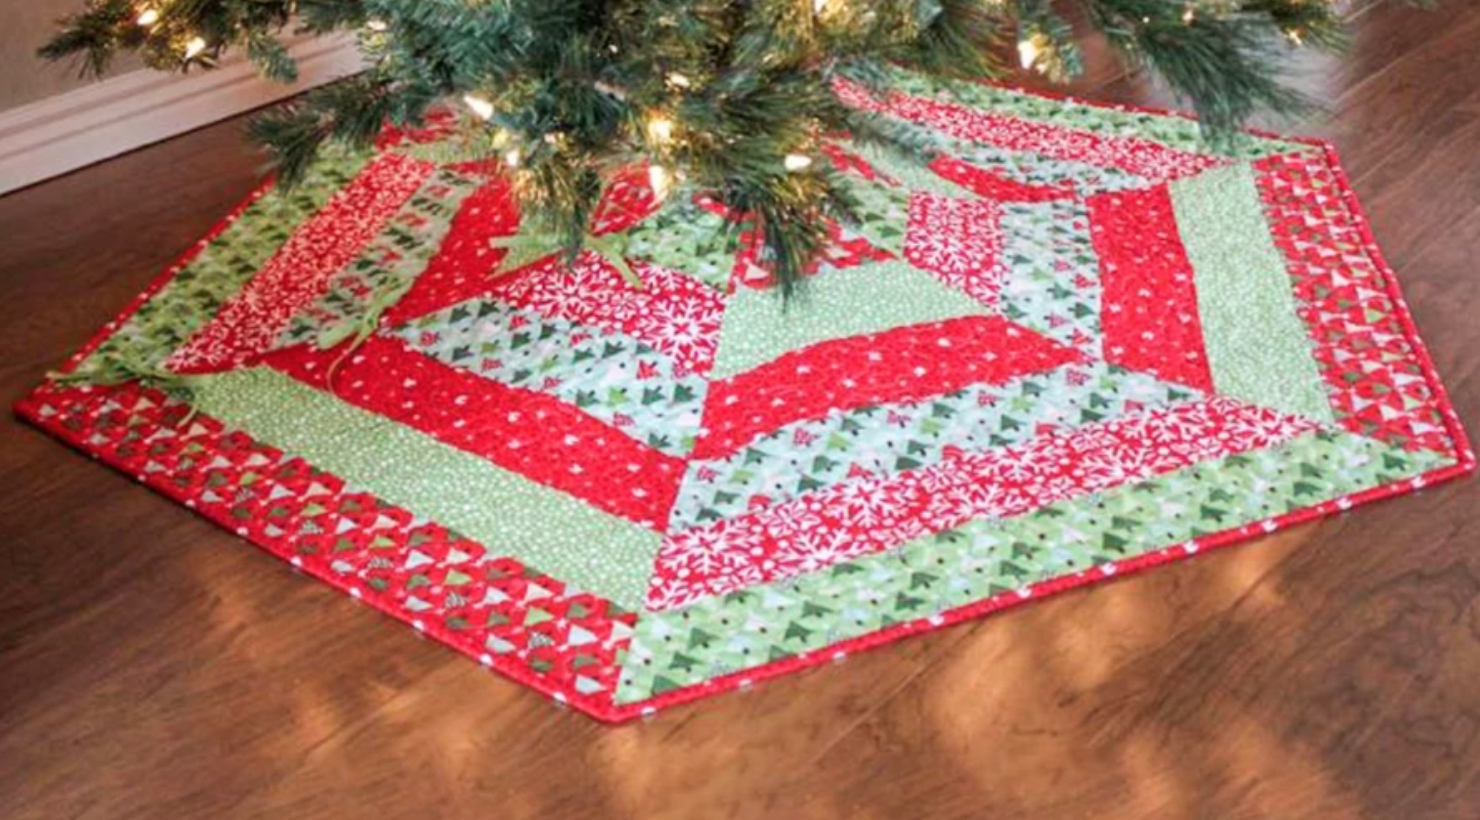 green and red striped quilted tree skirt